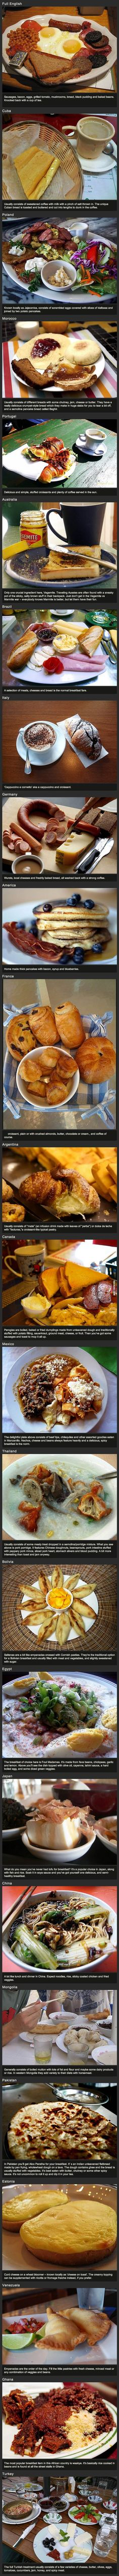 #Breakfast From various countries around the world <--- Eat like your favorite Hetallia character, also, they missed a L in Australlia